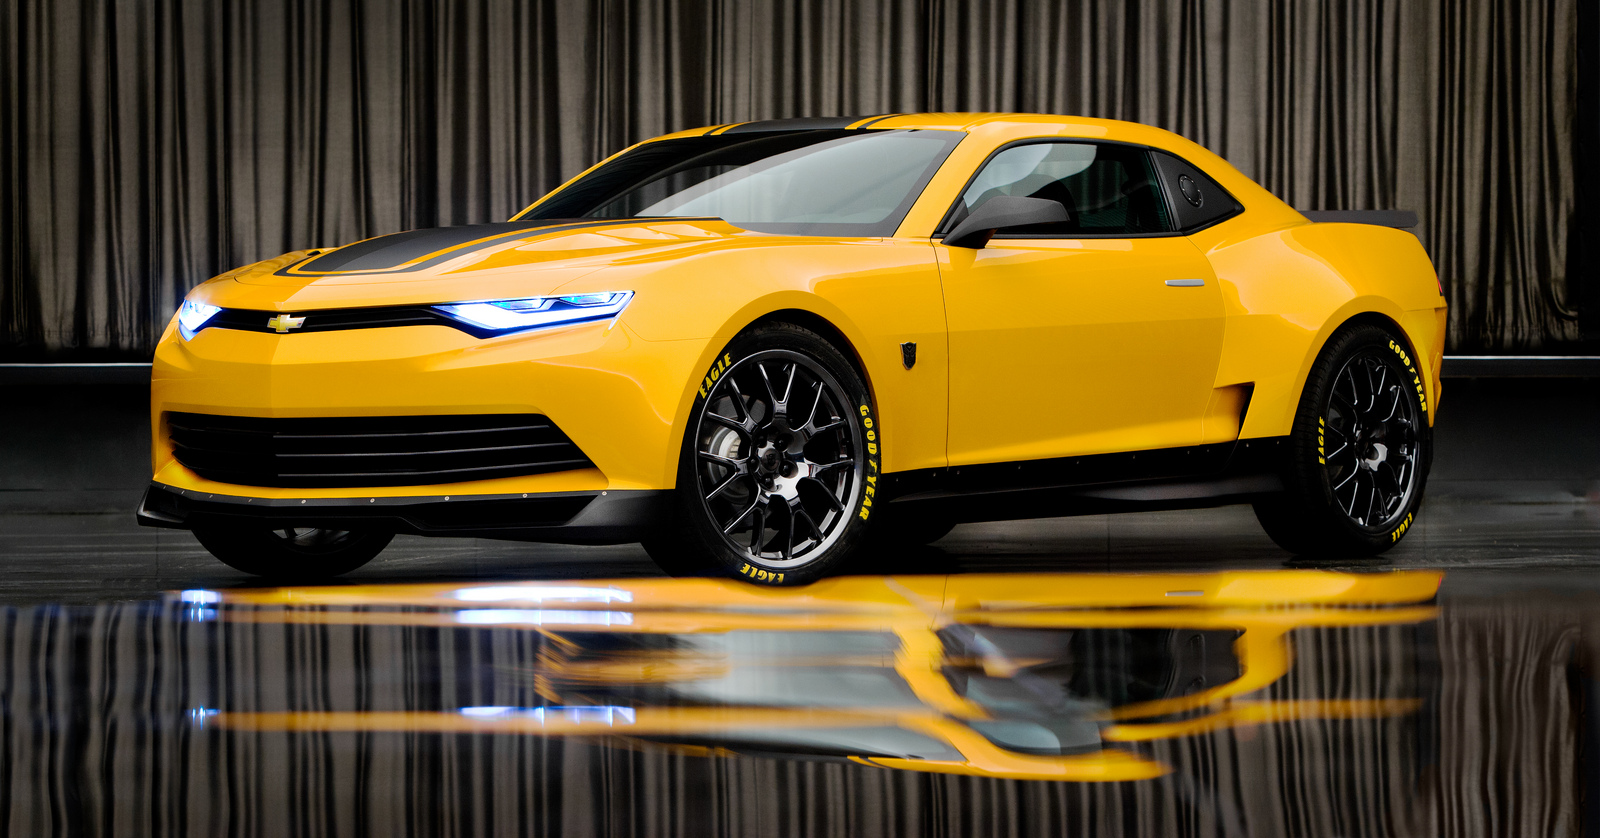 Transformers 4 Bumblebee And Spy Video